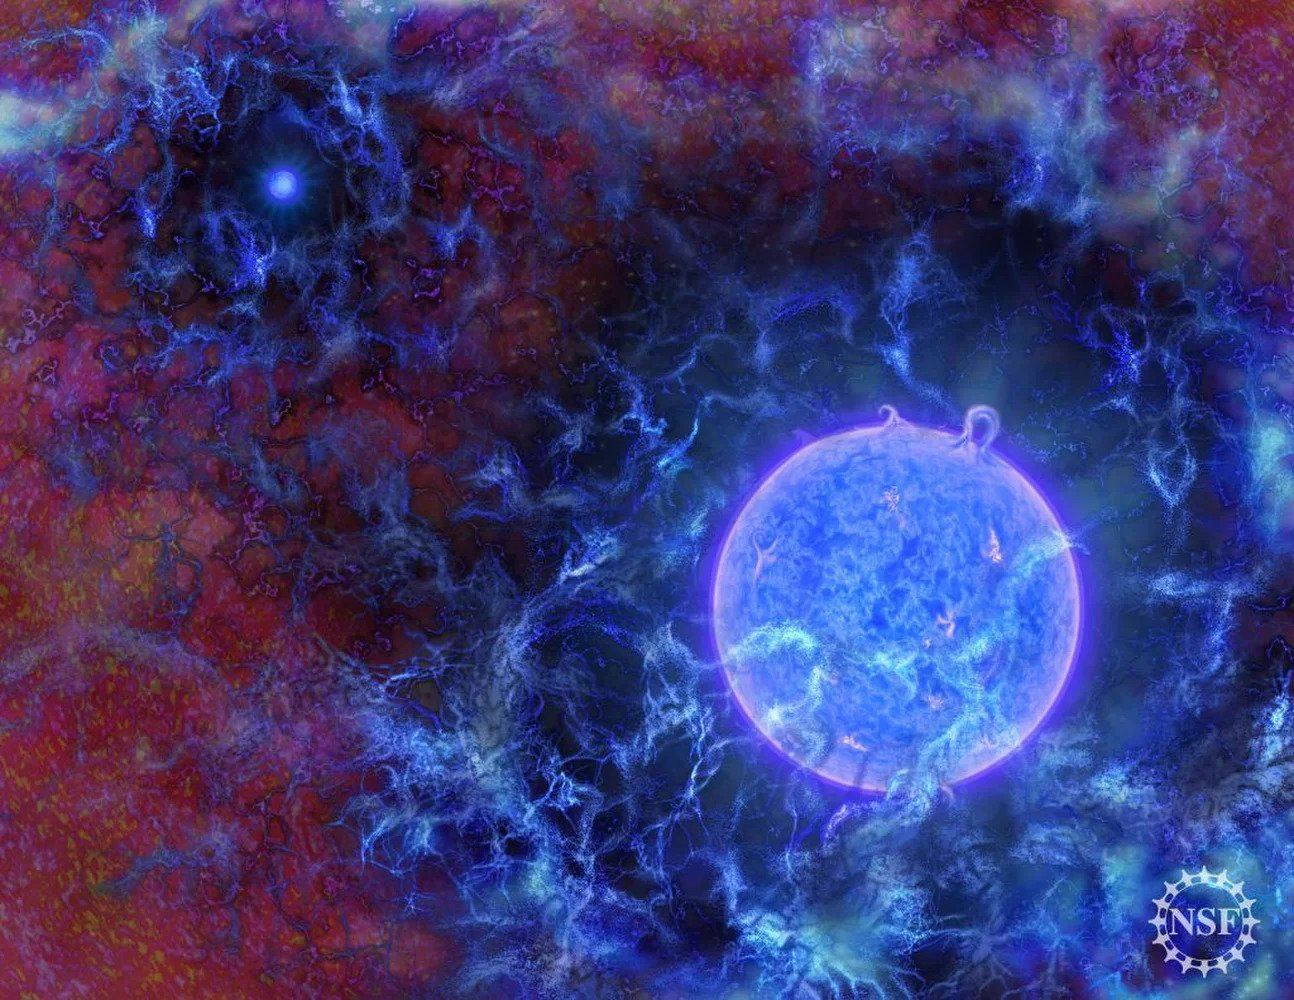 We may soon be able to see the first supergiant stars in the universe